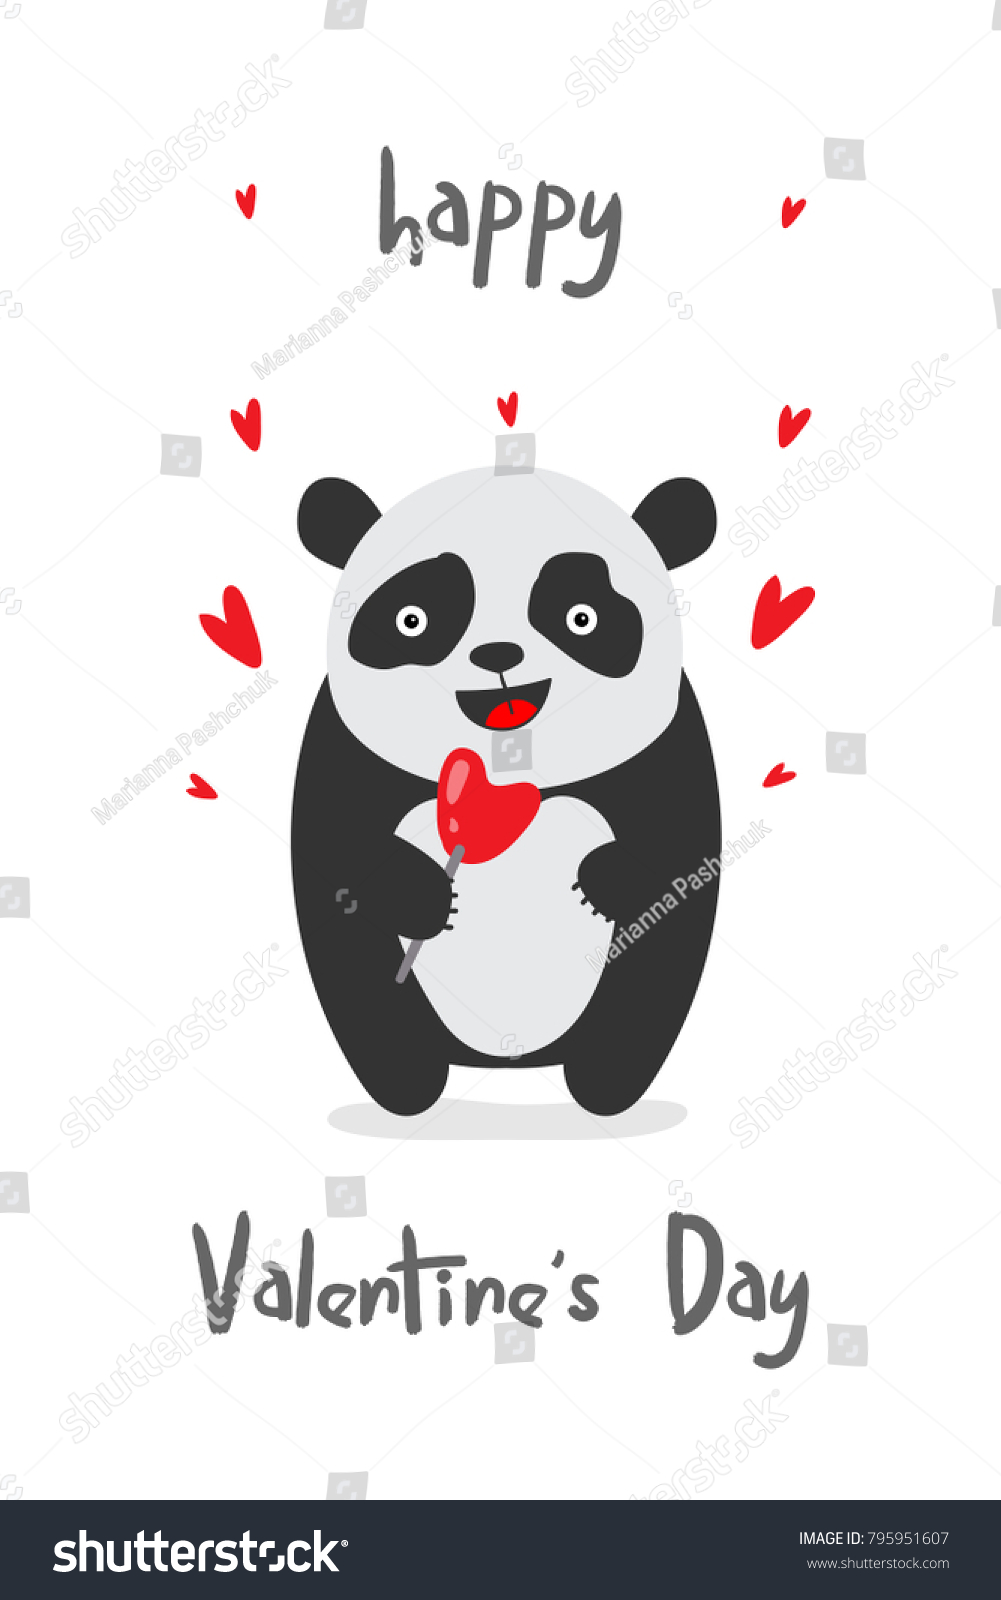 Happy Valentines Day Greeting Card With Cute Panda Vector